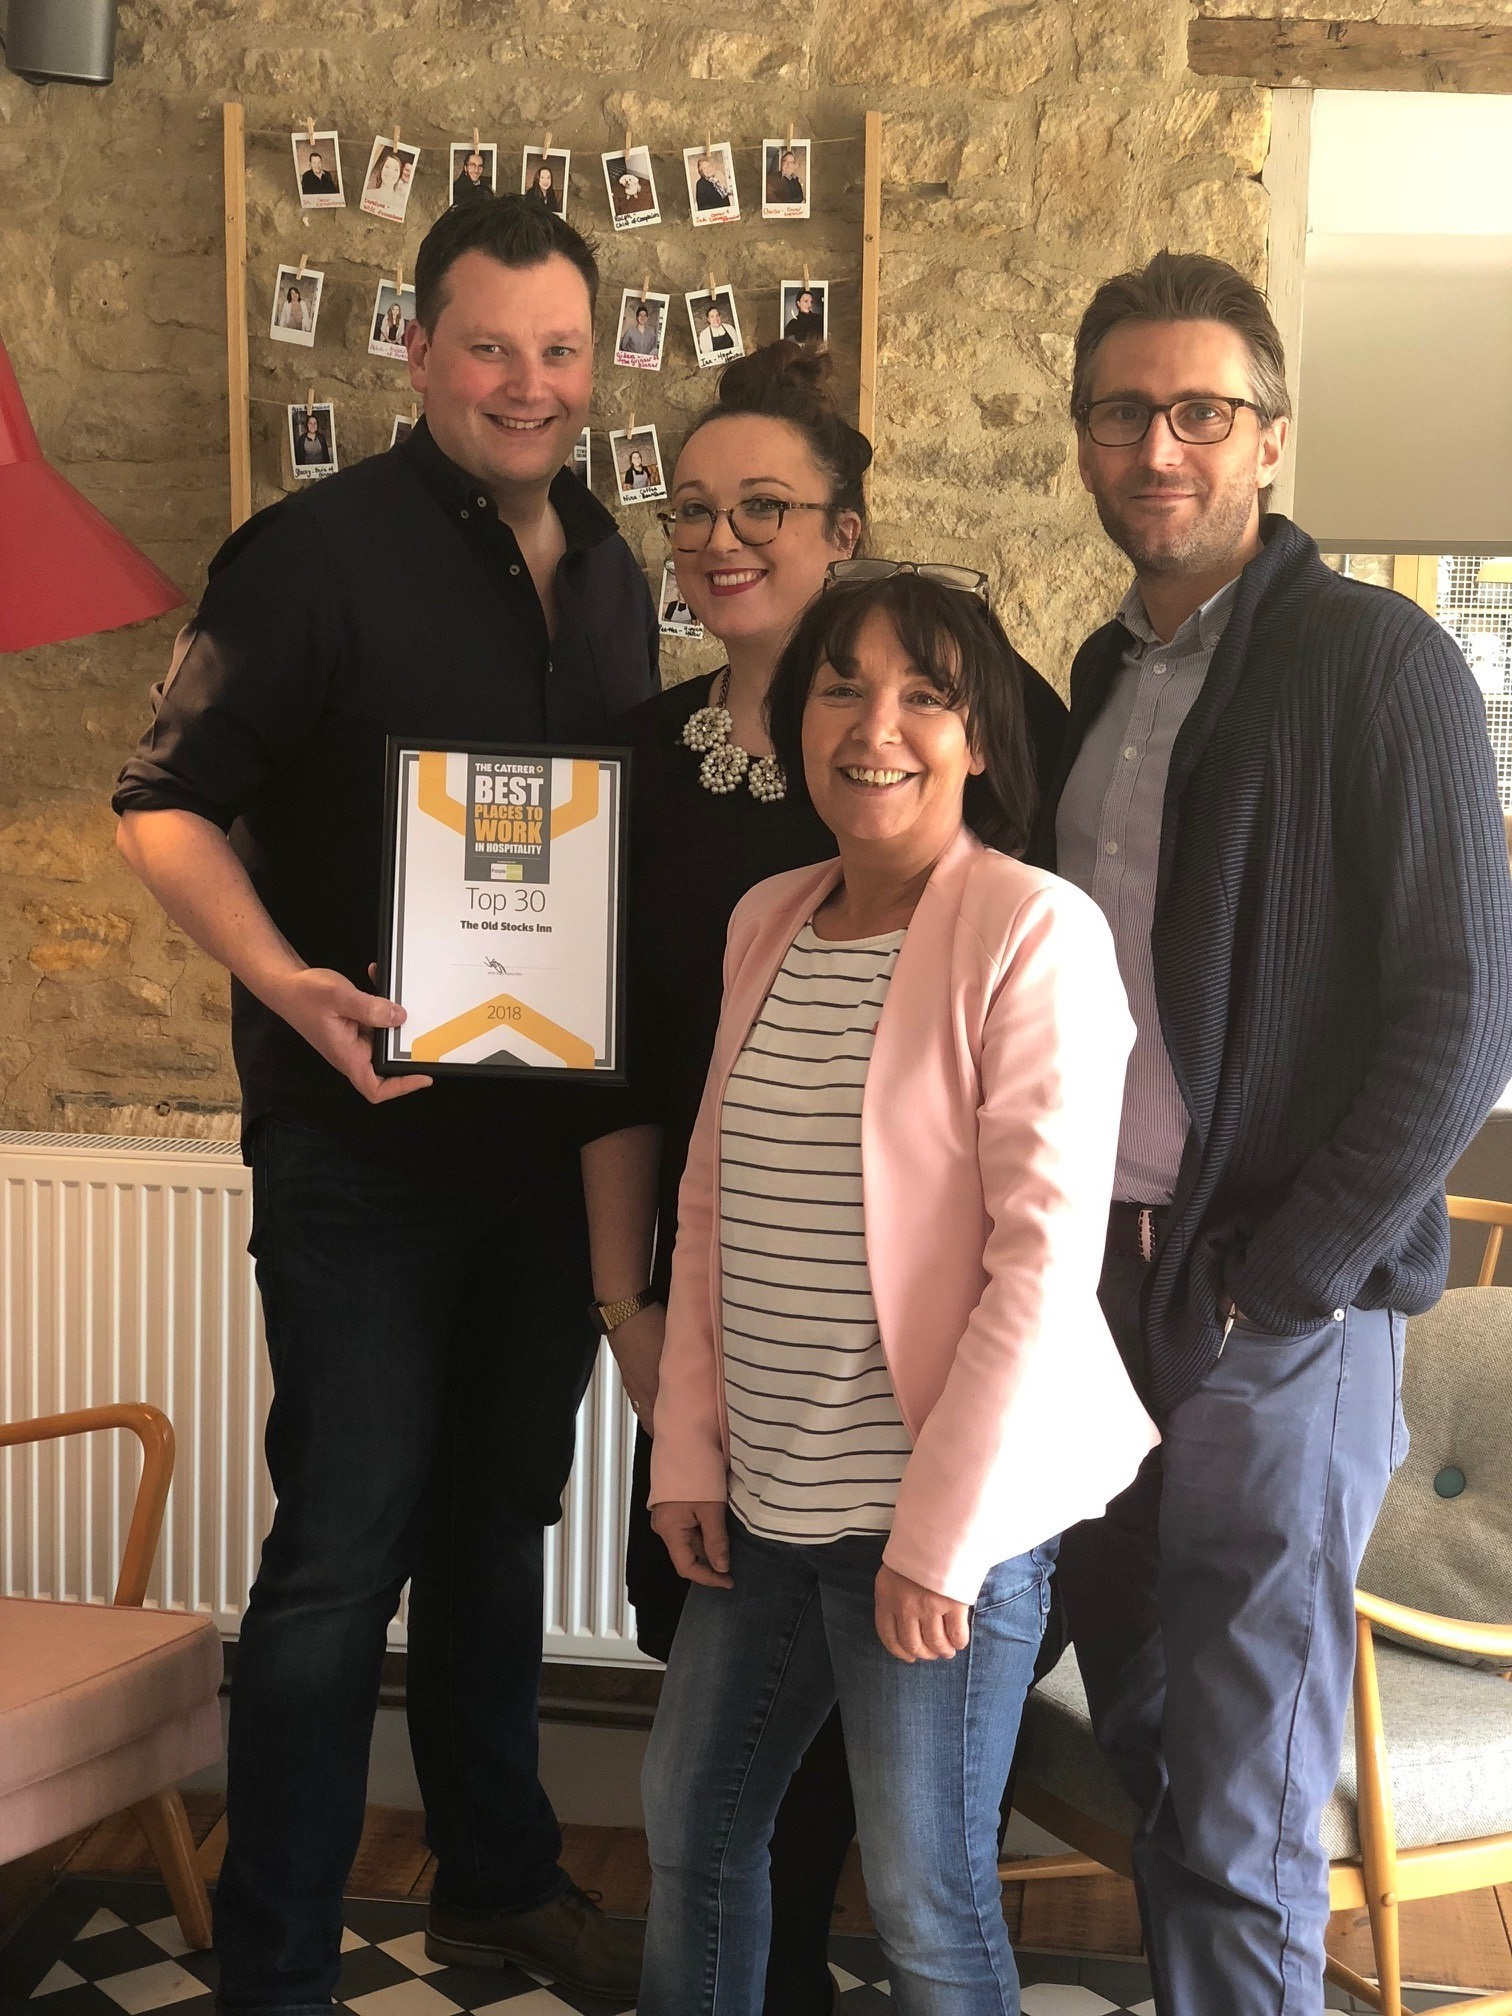 AWARD: The Old Stocks Inn team. From left to right:  Jim Cockell, owner of the Old Stocks Inn, with Charlotte Tuck, Amanda Rose and Richard Tuck